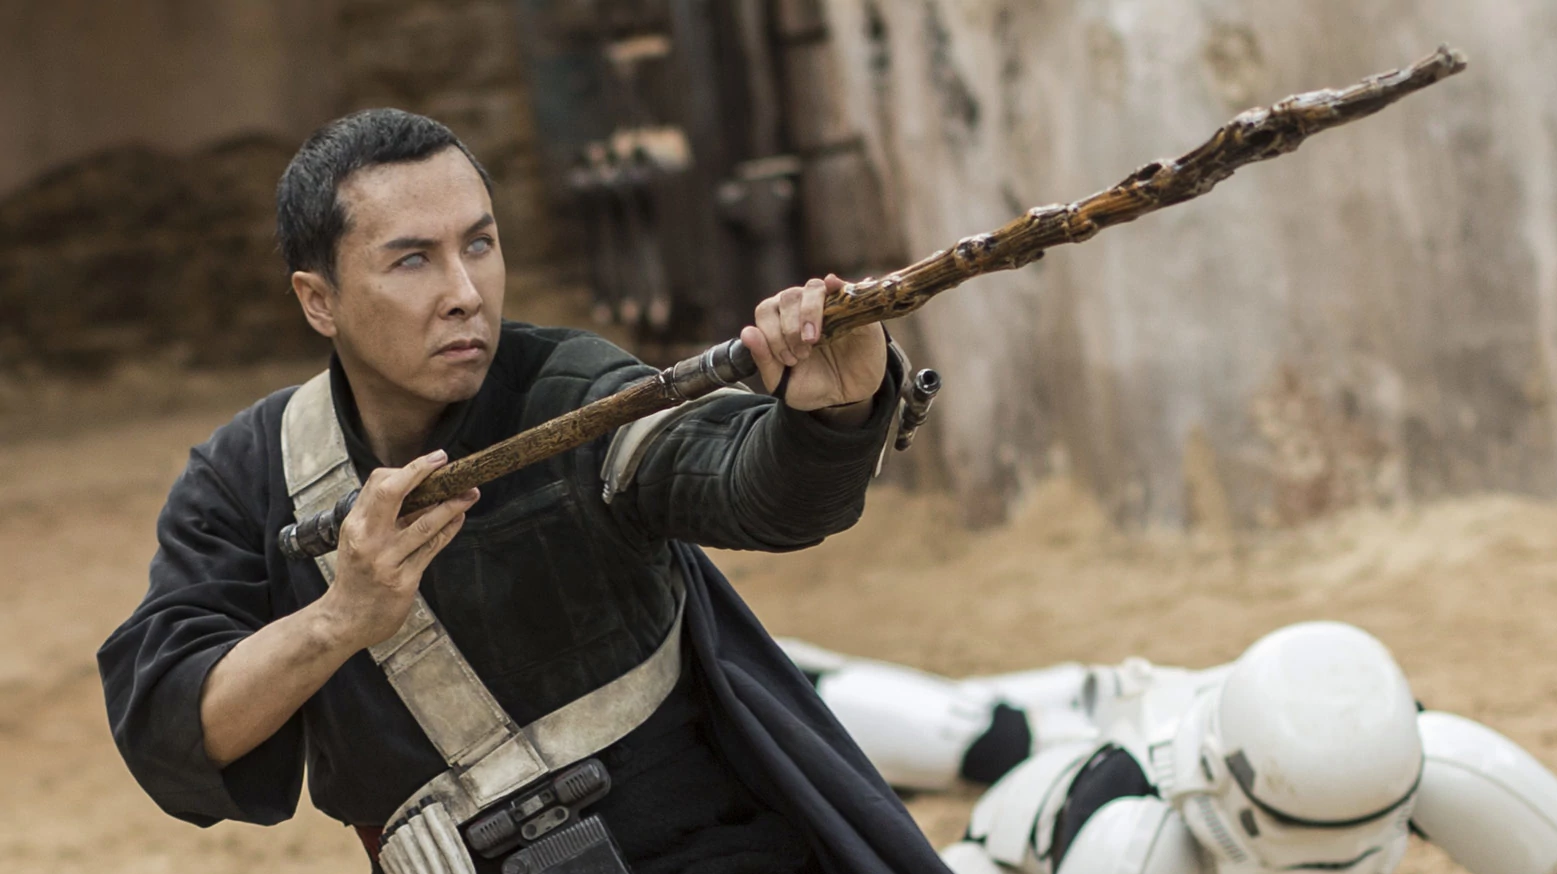 Donnie Yen Has Some Insight Into Why Star Wars Doesn't Do Well In China